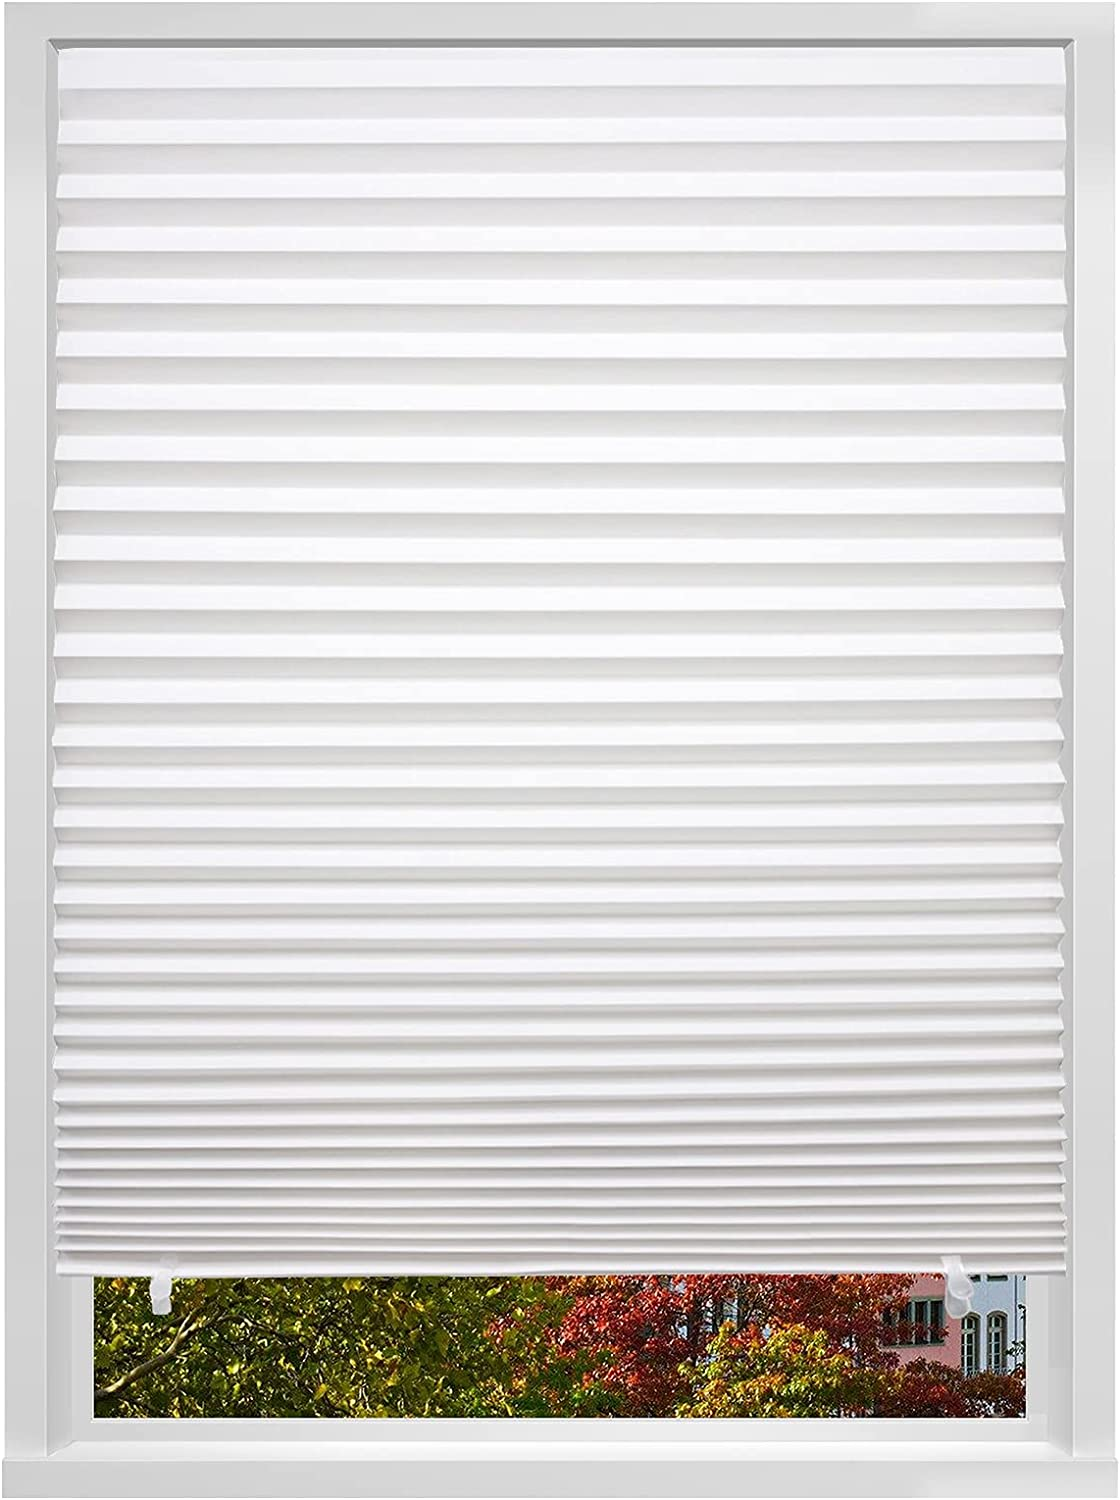 Changshade 6-Pack Light Filtering Pleated Paper Shades for Windows, Temporary and Portable Shades with 12 Clips for Travel, Peel and Stick to Install, Cut to Any Size, White PLT36WT72A